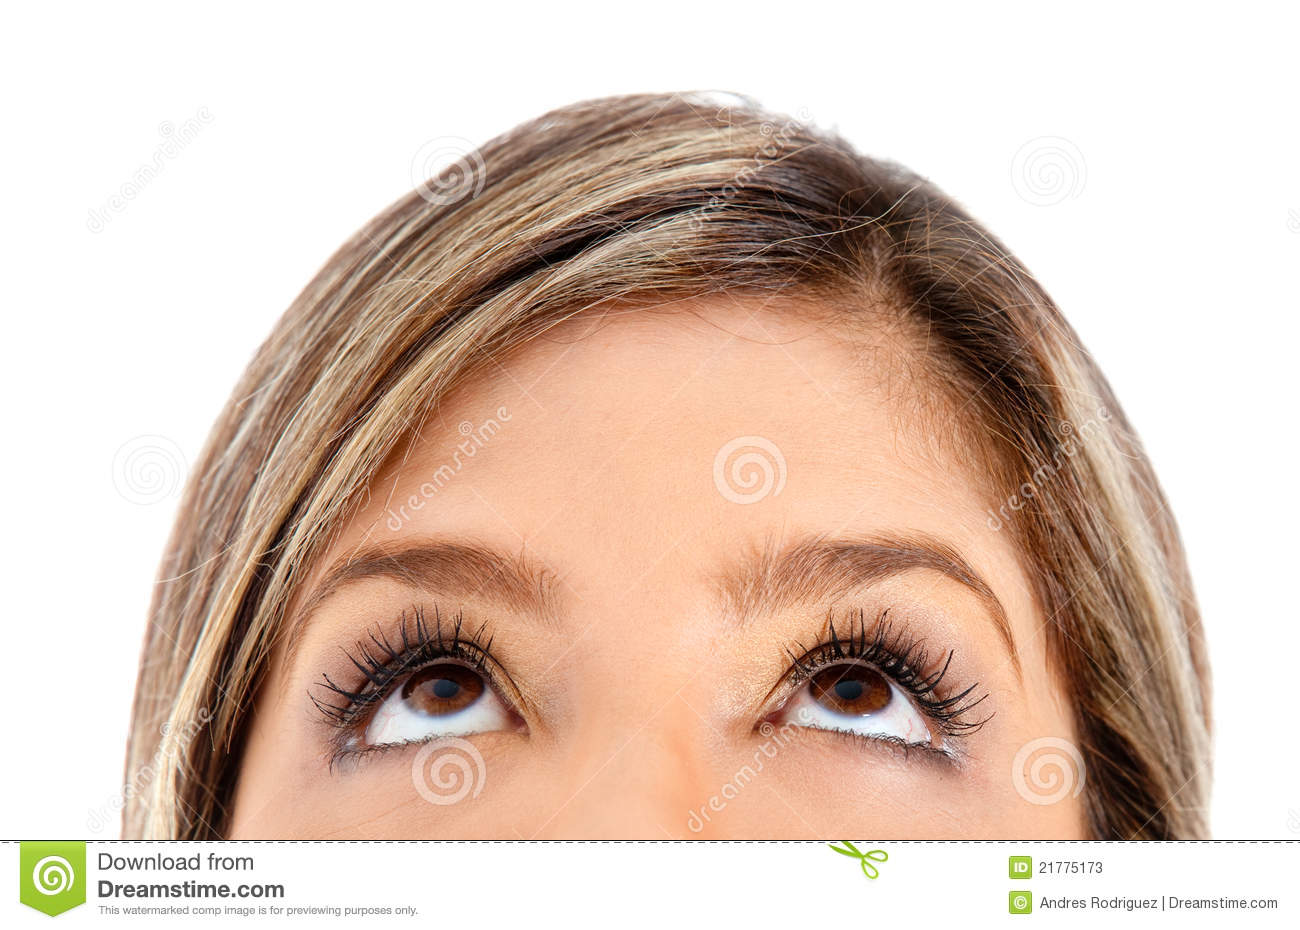 Http Www Dreamstime Com Stock Photos Eyes Looking Up Image21775173